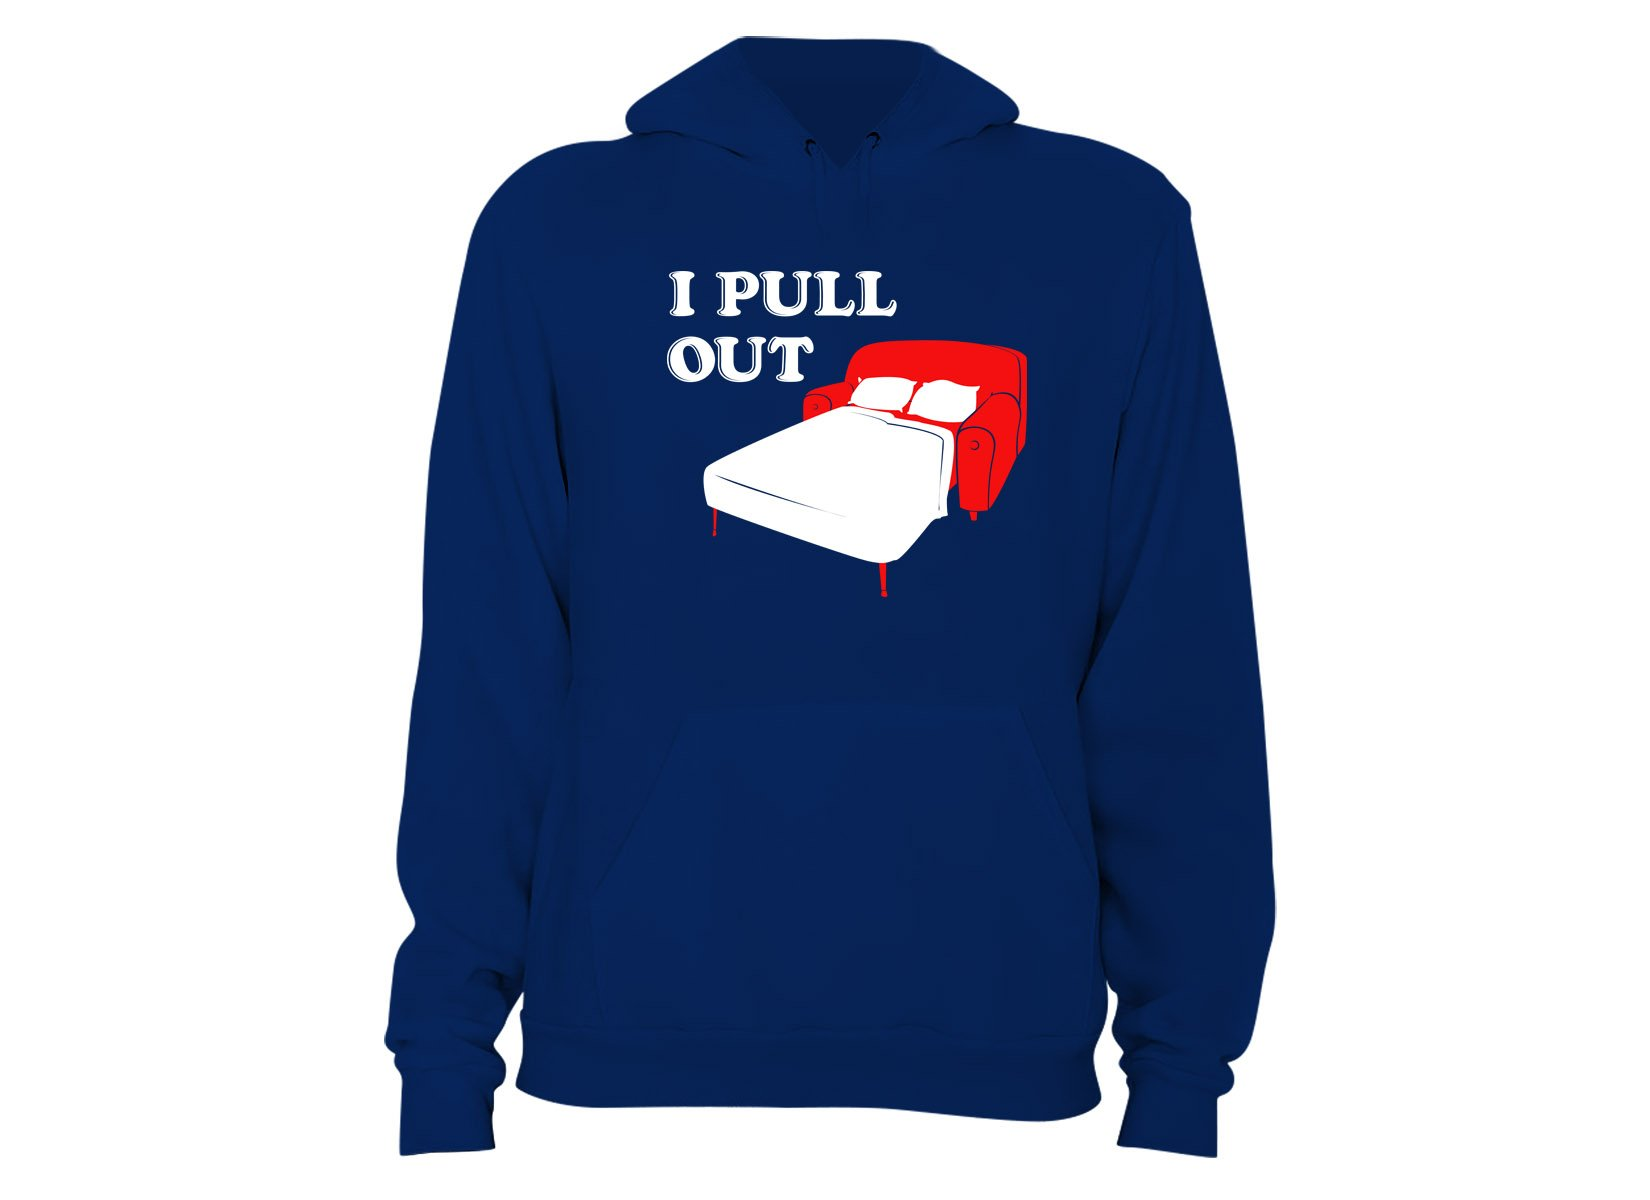 I Pull Out on Hoodie